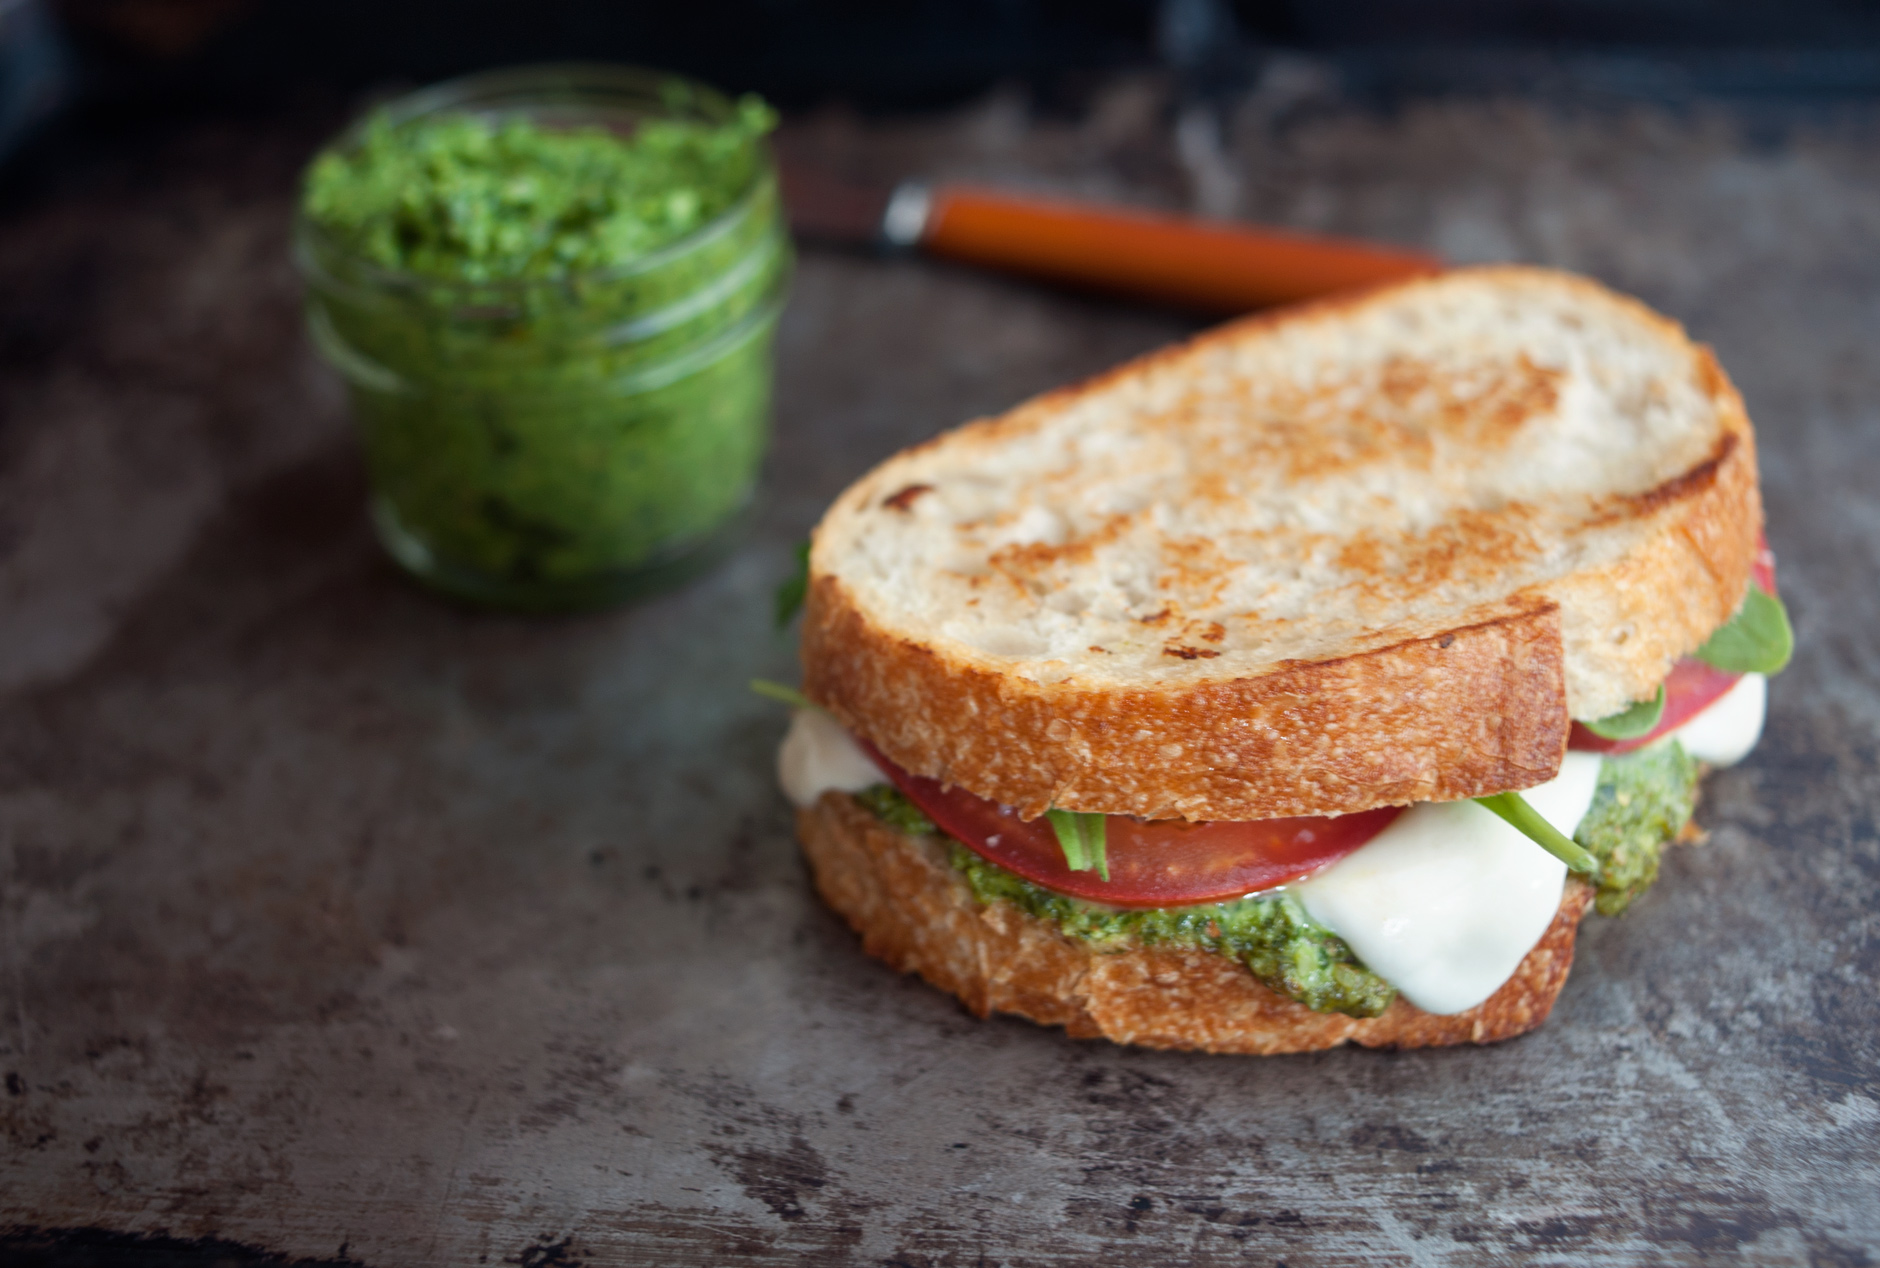 caprese_Sandwich_food_photography_4.jpg